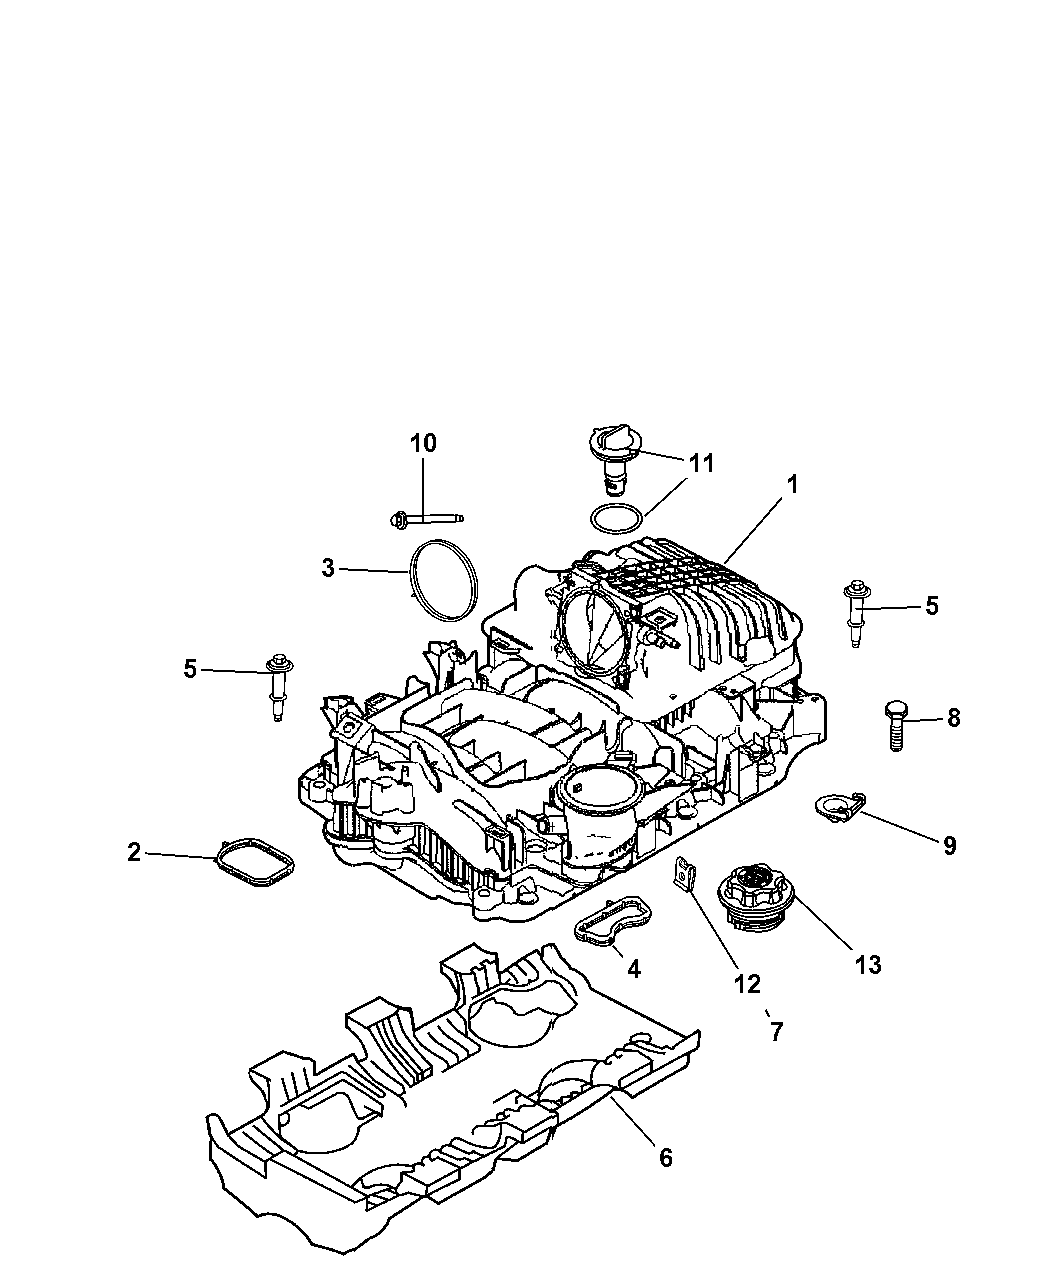 Circuit Electric For Guide: 2007 dodge ram 1500 4.7 engine